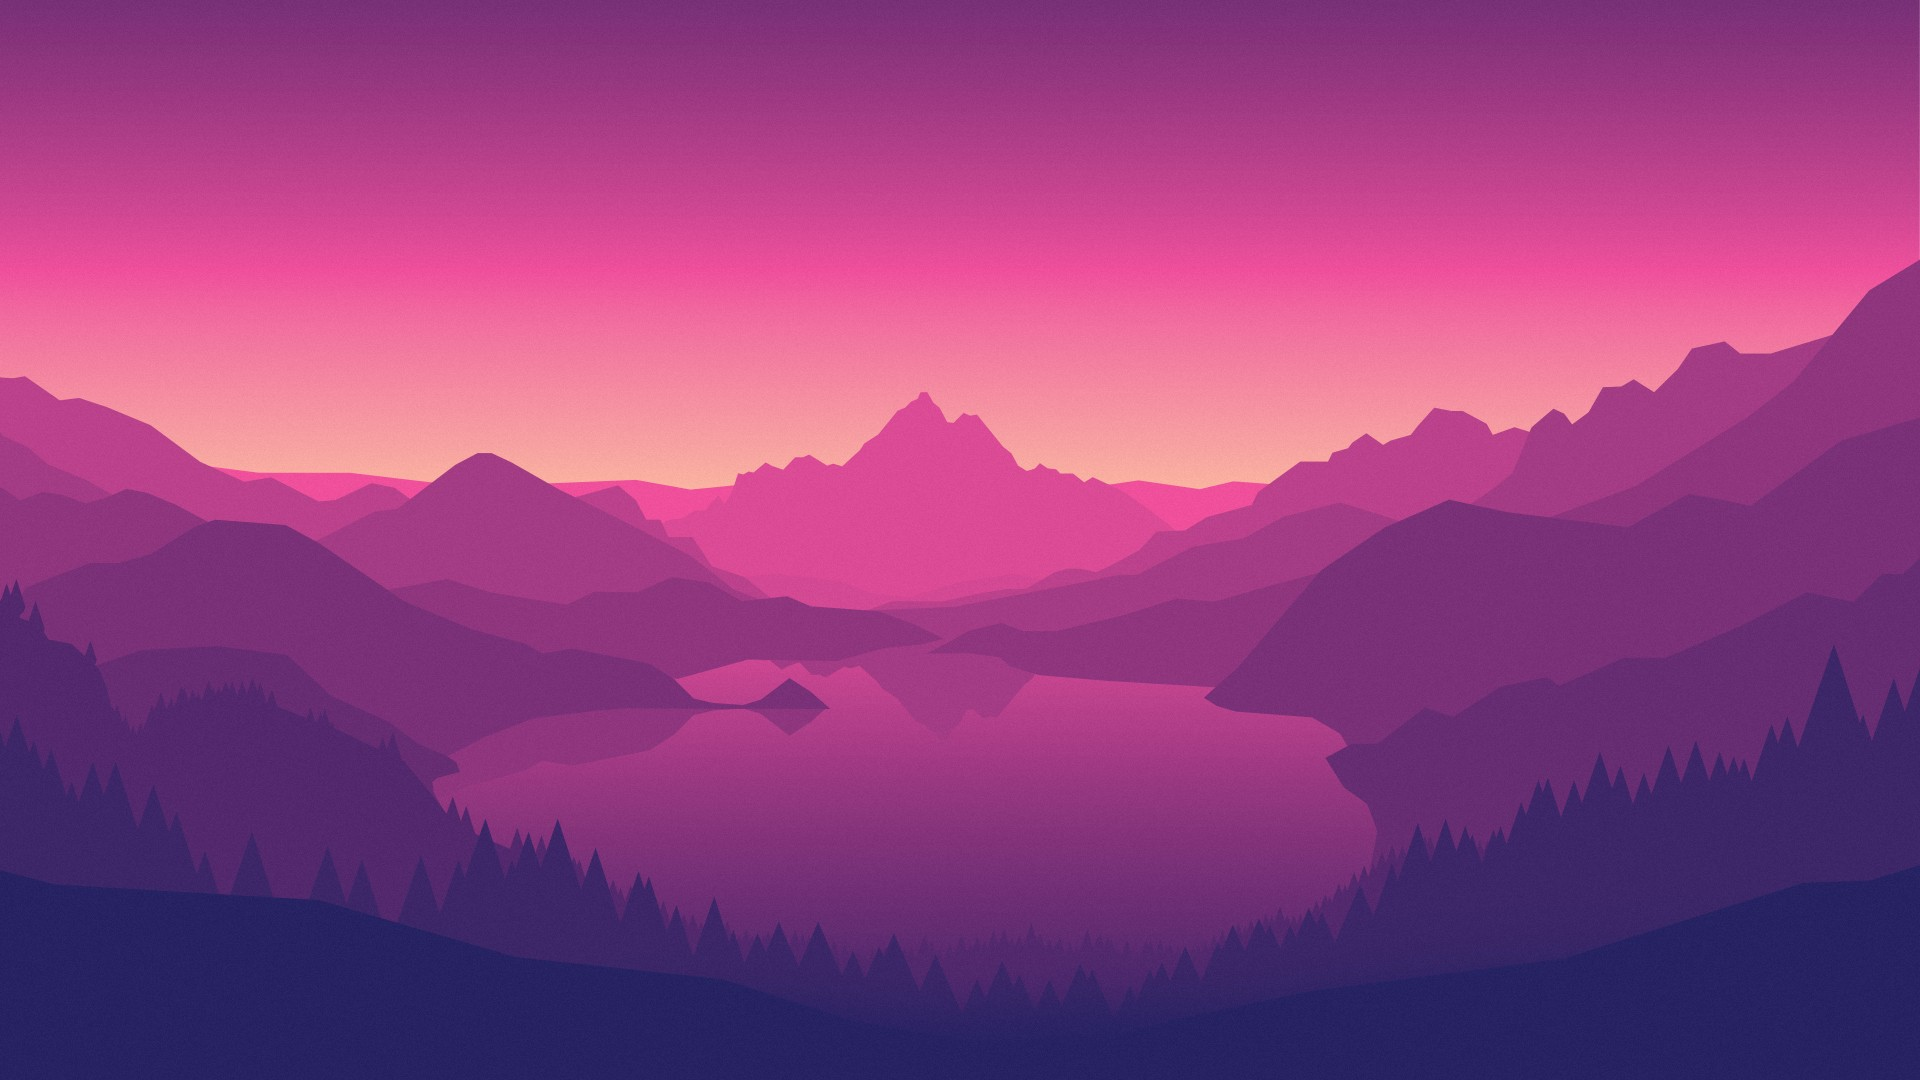 Wallpaper For Laptop: 38+ Firewatch Wallpapers ·① Download Free Beautiful High